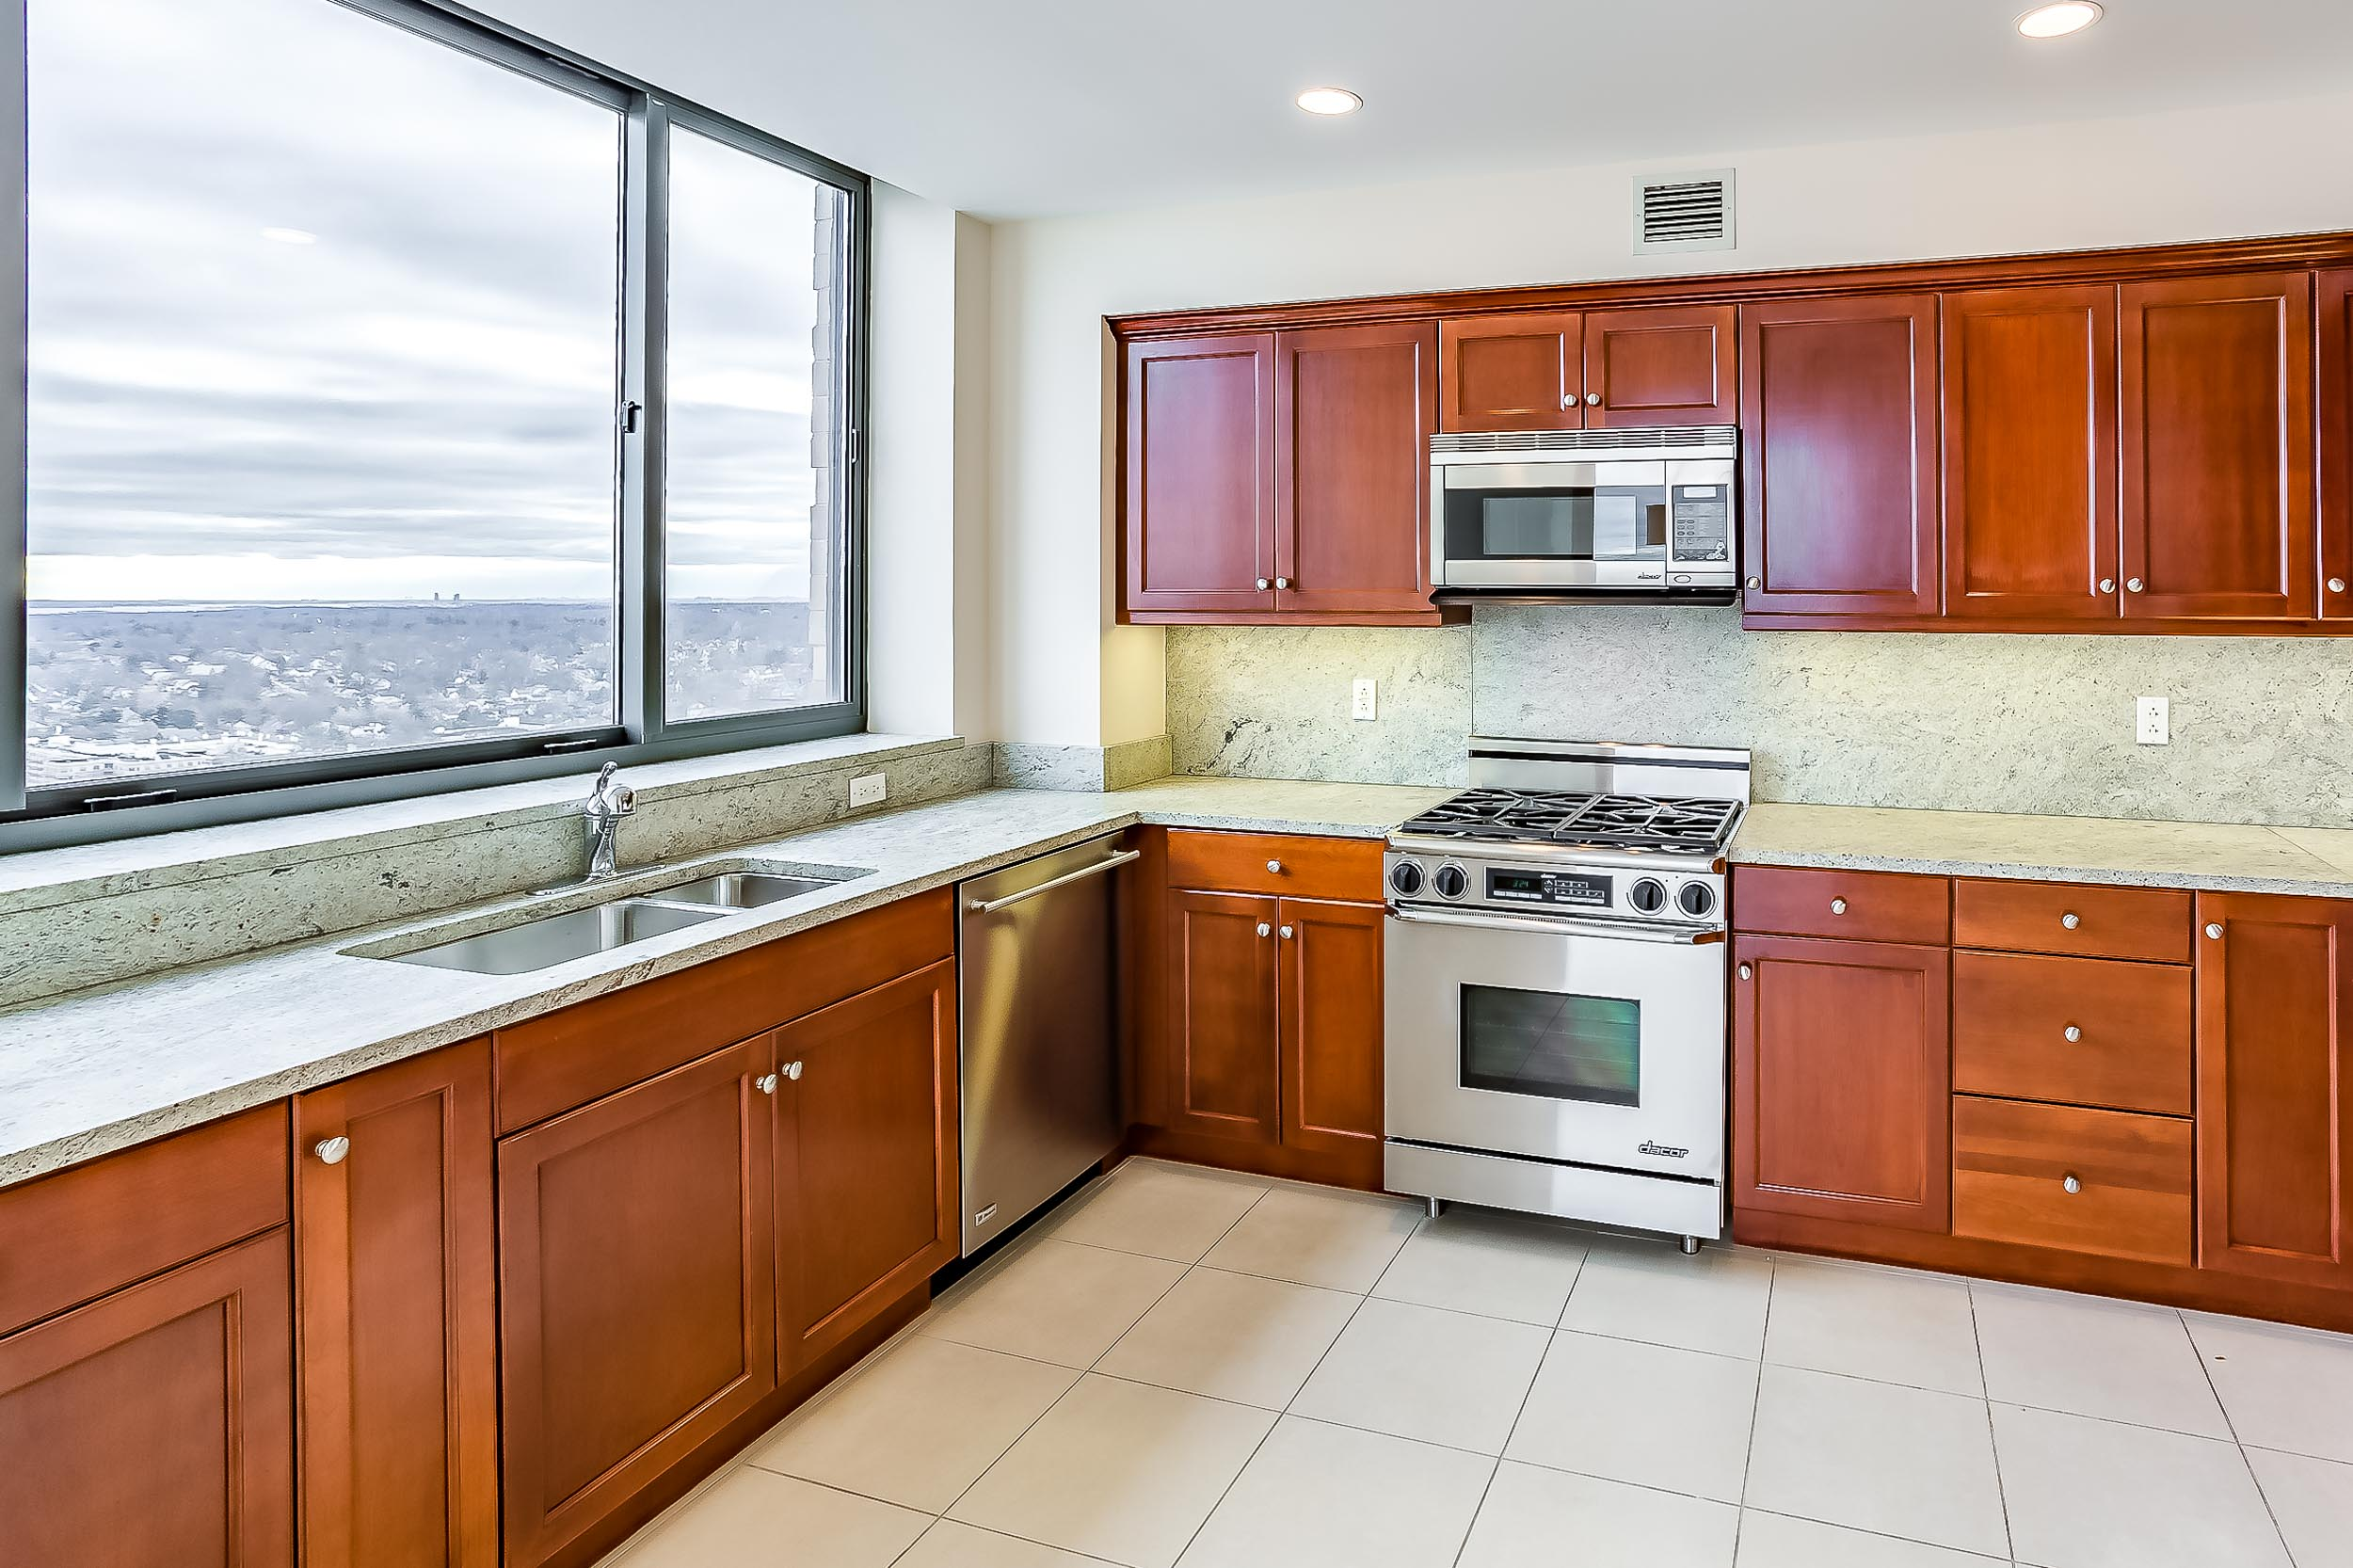 Luxury Condo for sale at Trump Tower White Plains